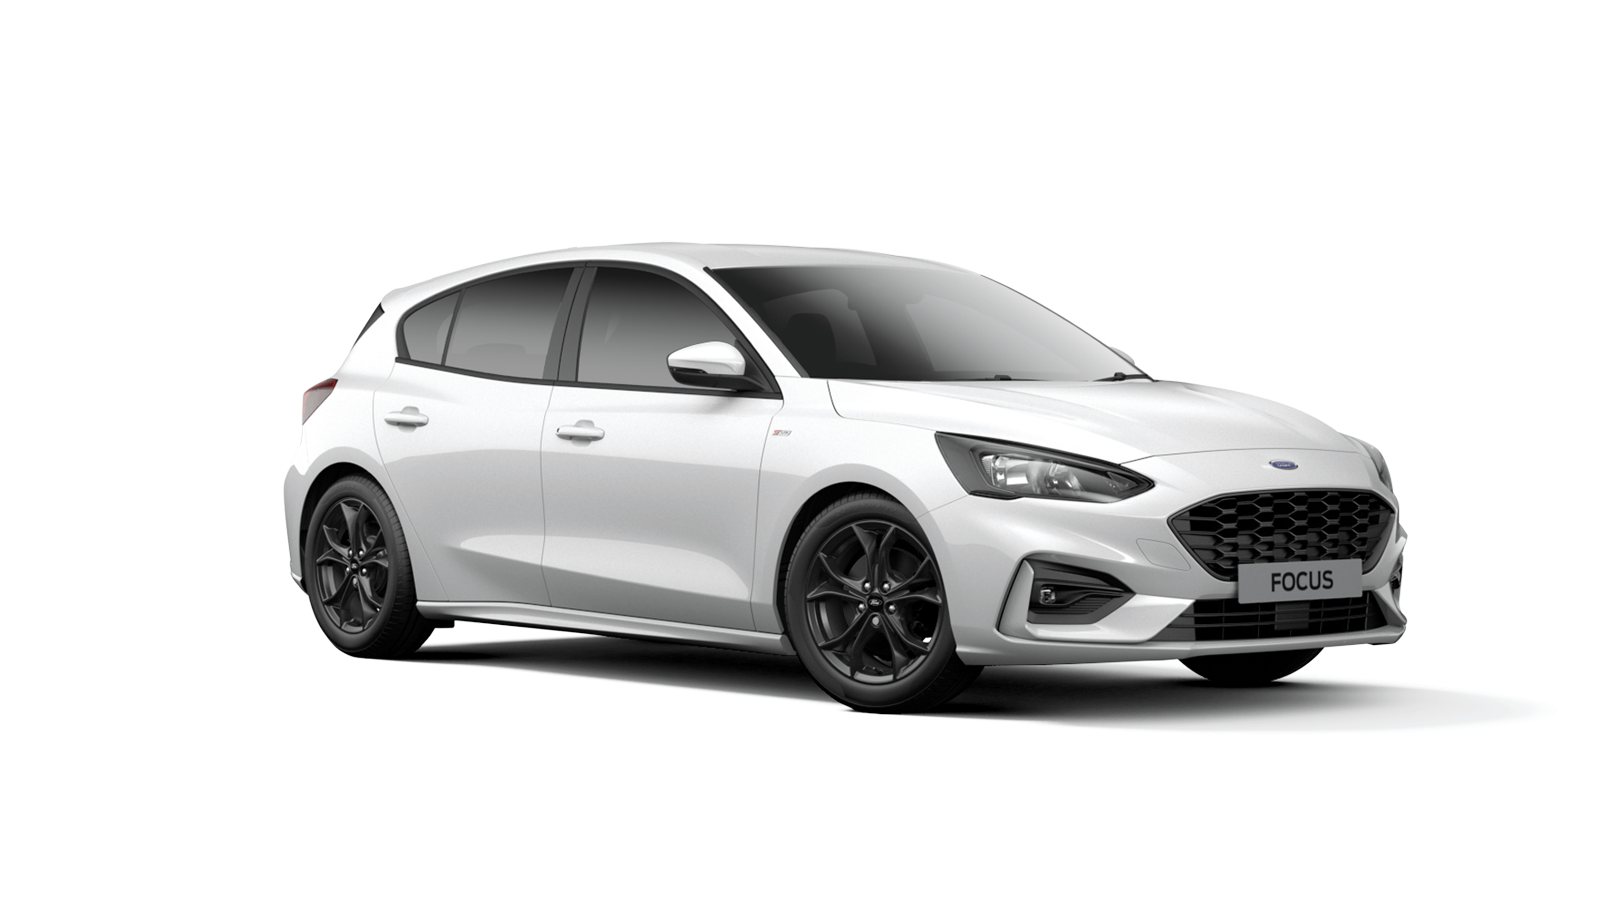 NEW FOCUS ST-Line 5 Door in Frozen White